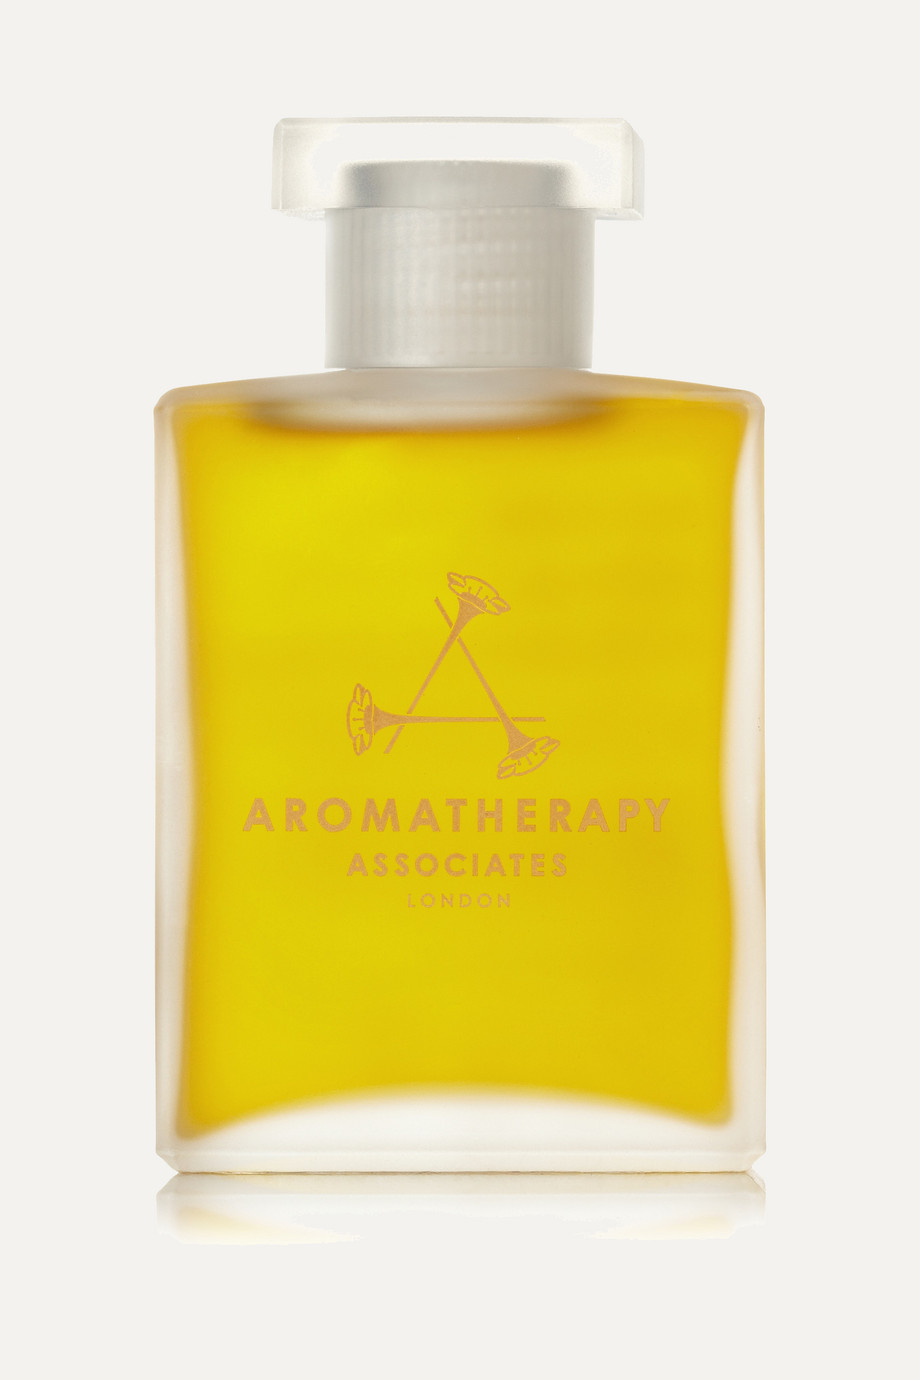 Aromatherapy Associates Revive Morning Bath & Shower Oil, 55ml